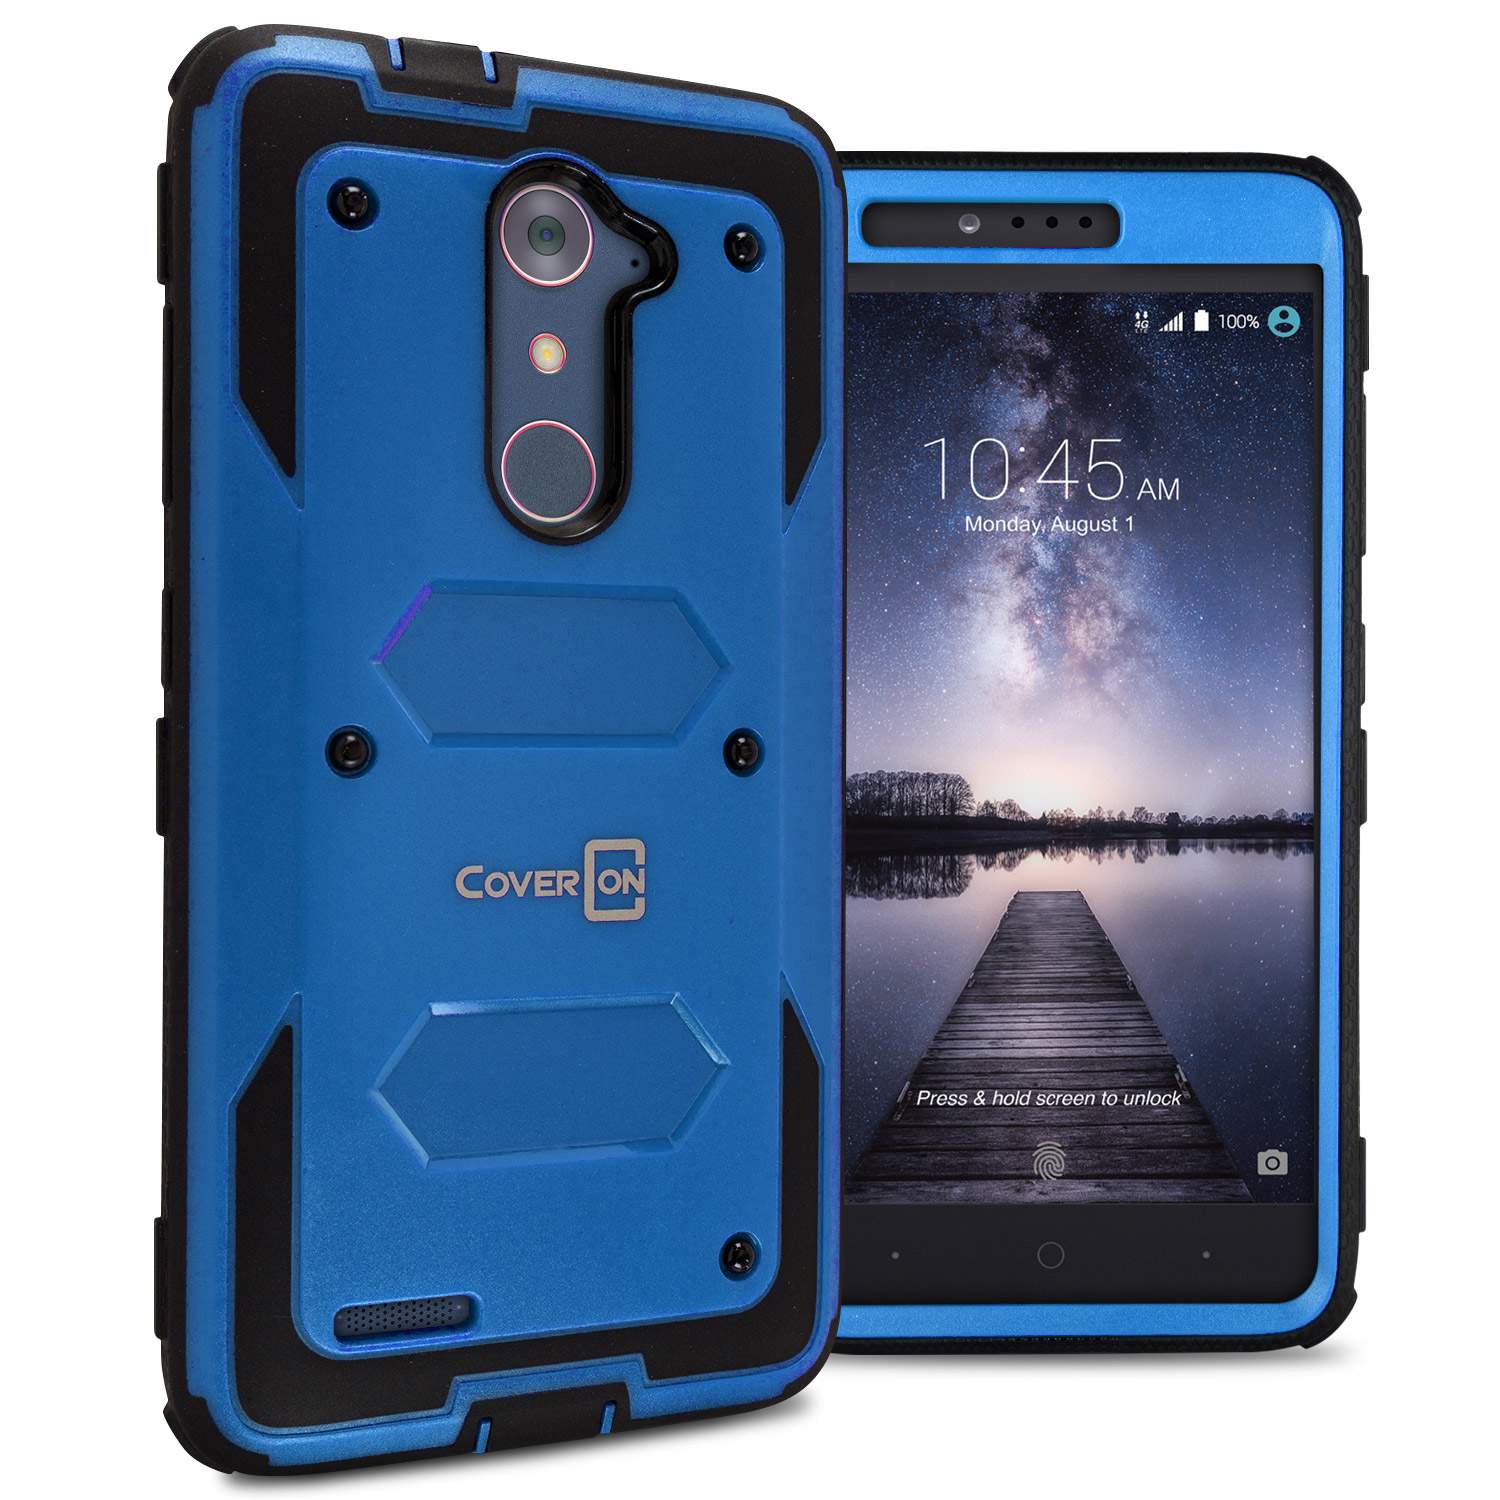 the installation zte z981 phone cases make the